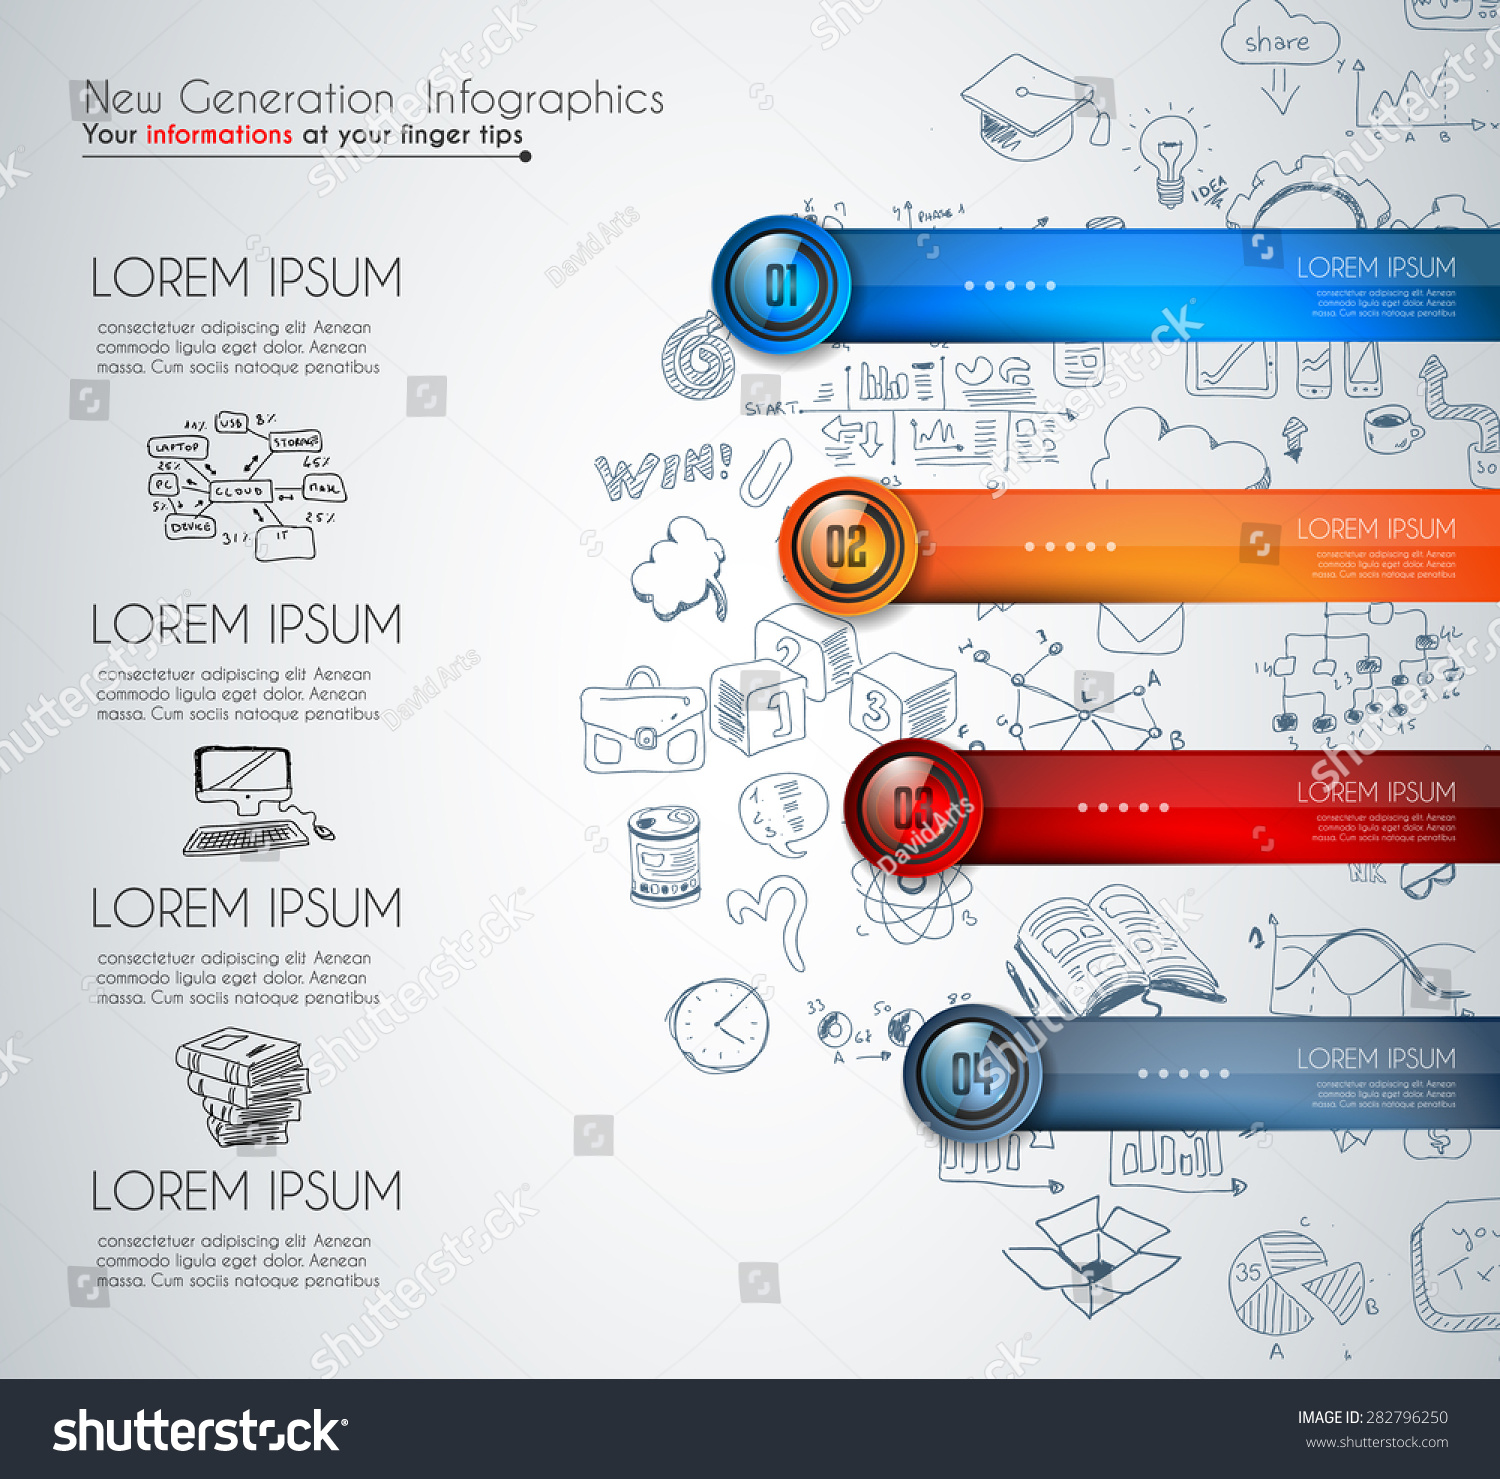 Infographic Template Modern Data Visualization Ranking Stock Vector